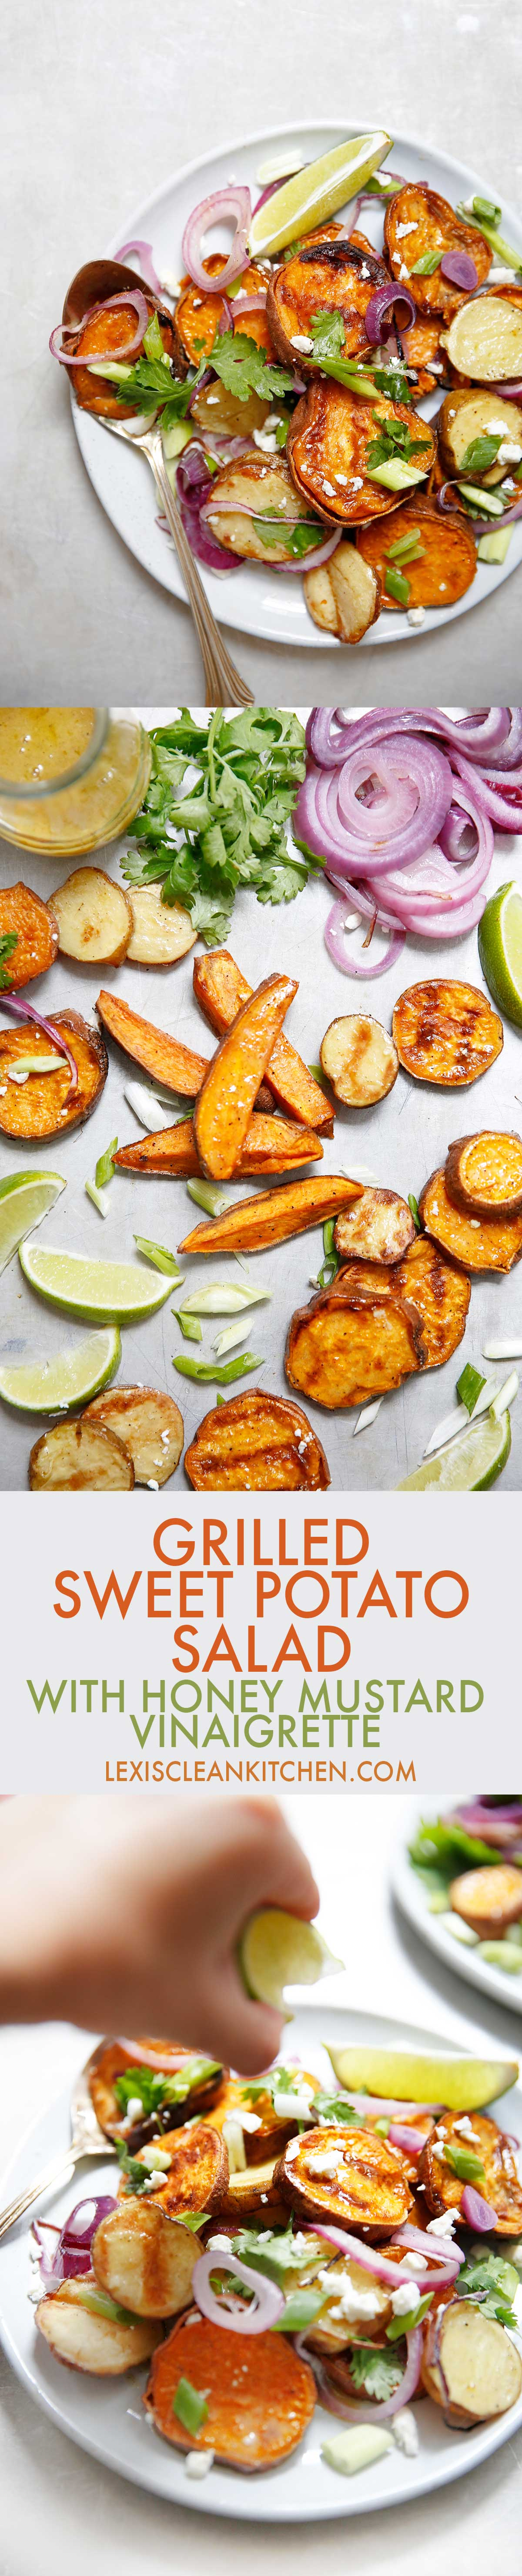 Grilled Sweet Potato Salad [paleo-friendly, grain-free, gluten-free] | Lexi's Clean Kitchen